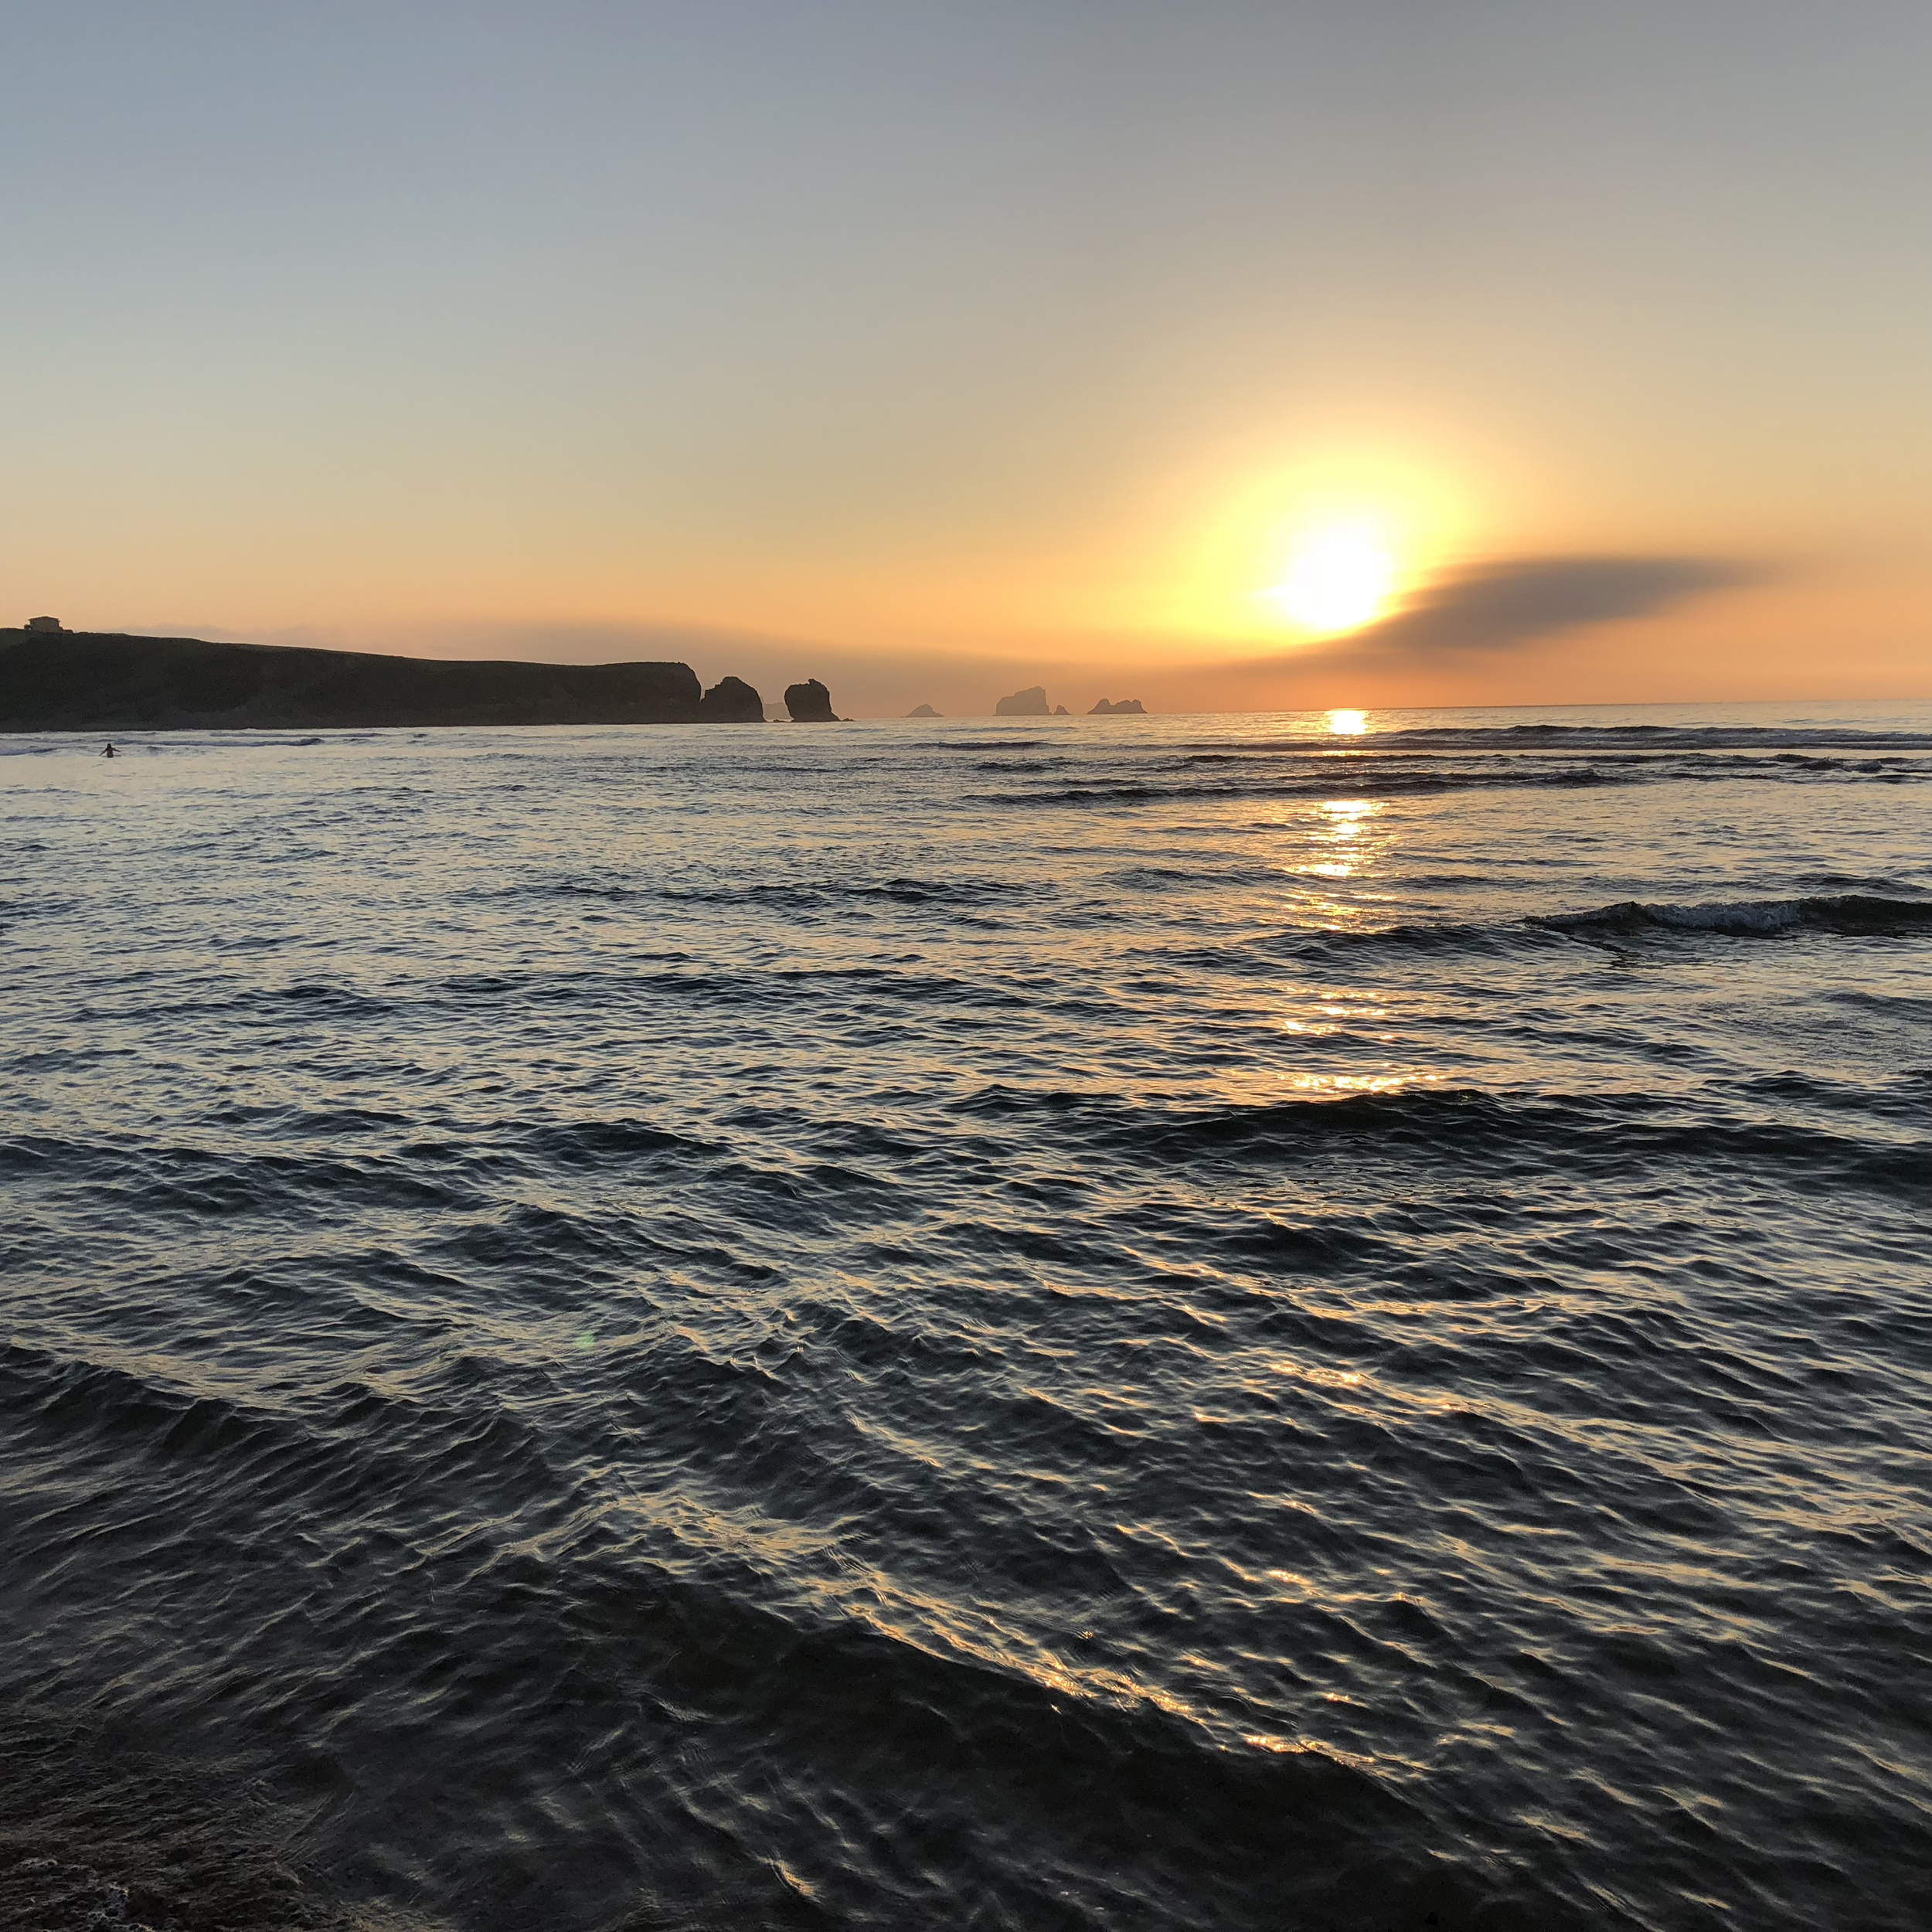 Sunset from the beach at Valdearenas.